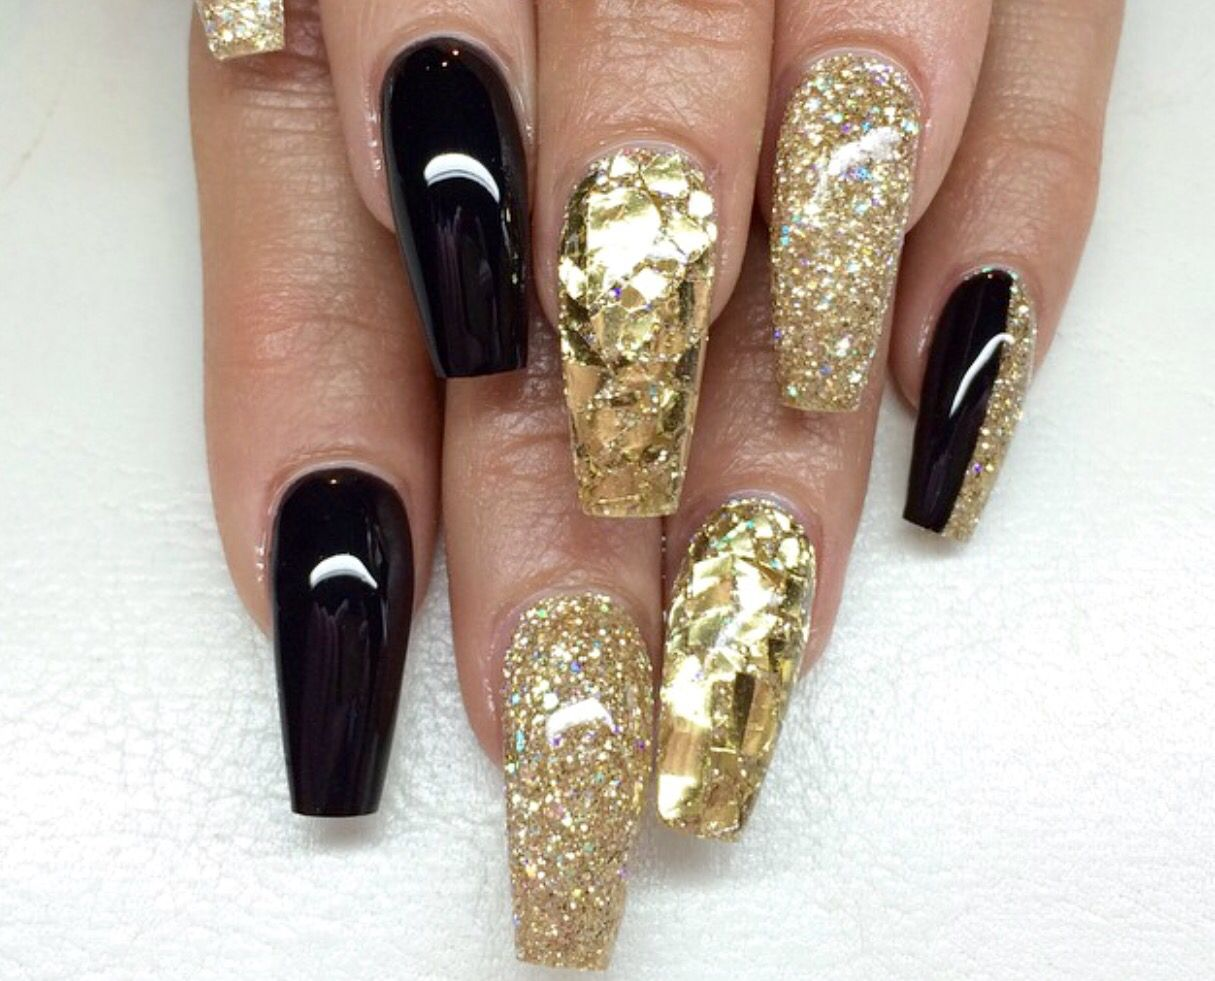 Pin by Ashley Oudorn on Nails | Pinterest | Nail nail, Coffin nails ...